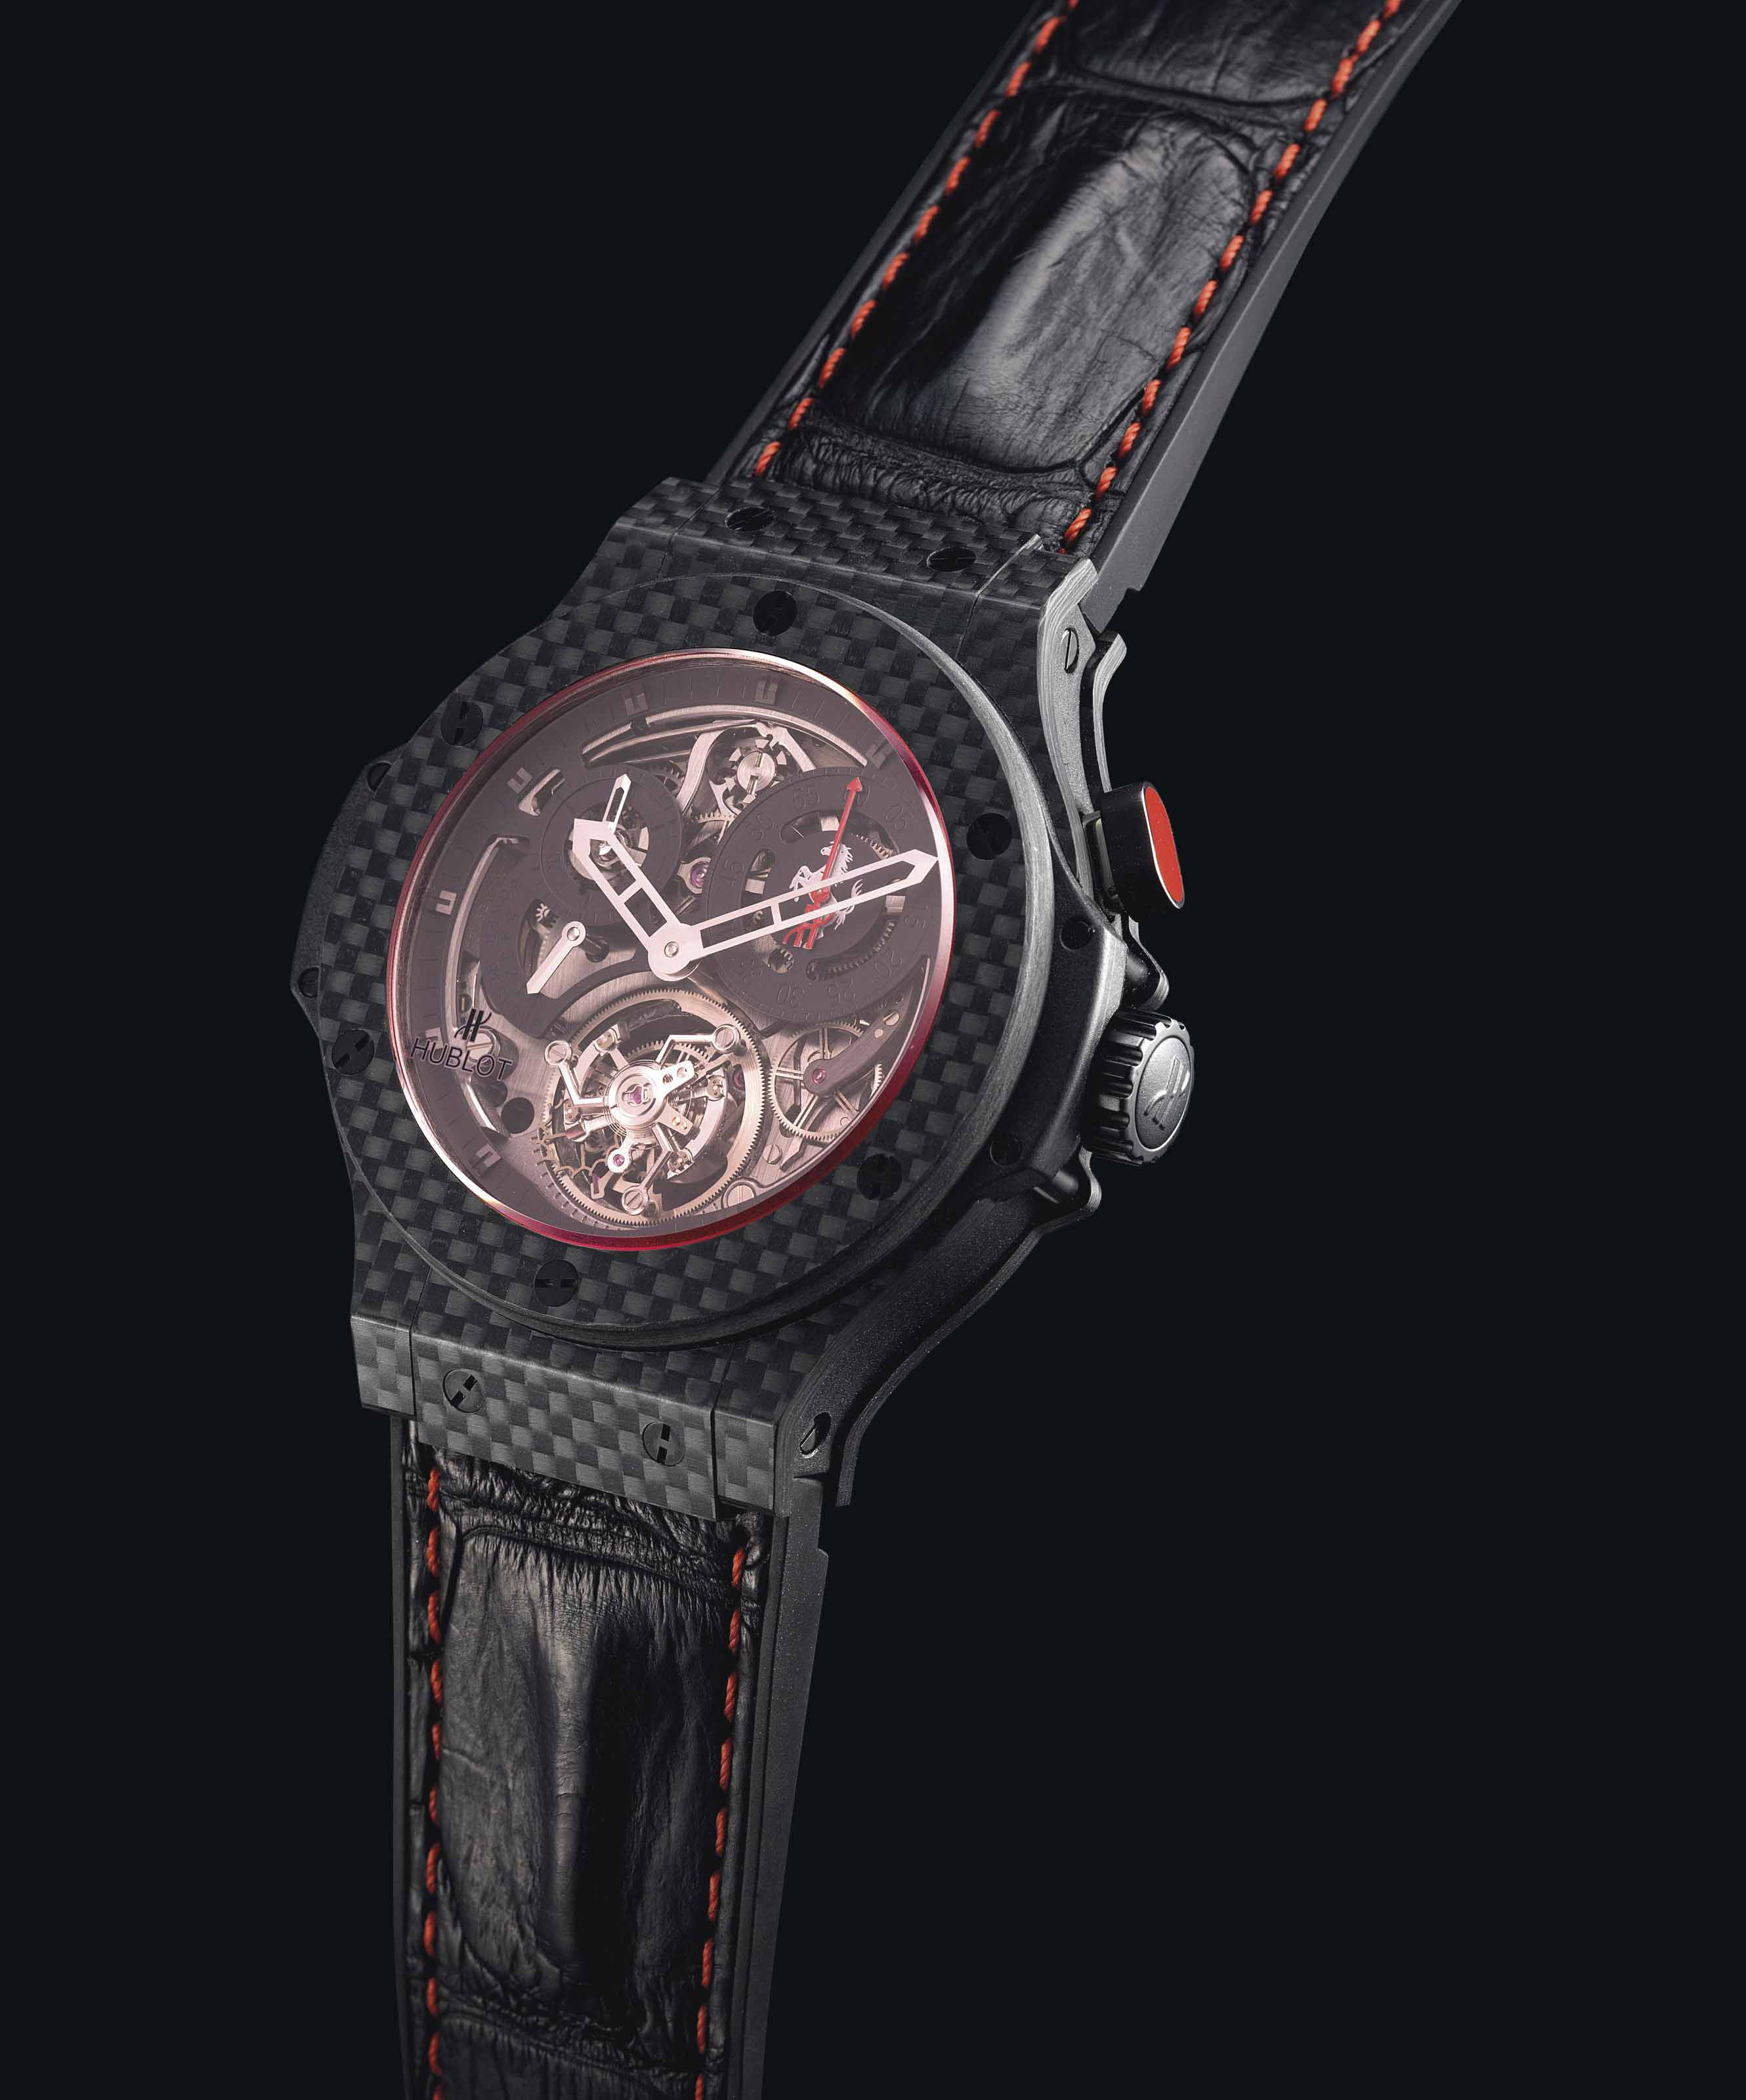 HUBLOT. A FINE AND VERY RARE CARBON FIBRE AND TITANIUM LIMITED EDITION SEMI-SKELETONISED SINGLE BUTTON CHRONOGRAPH TOURBILLON WRISTWATCH WITH 5 DAY POWER RESERVE, MADE FOR 20TH ANNIVERSARY OF THE FIRST FERRARI IN CHINA